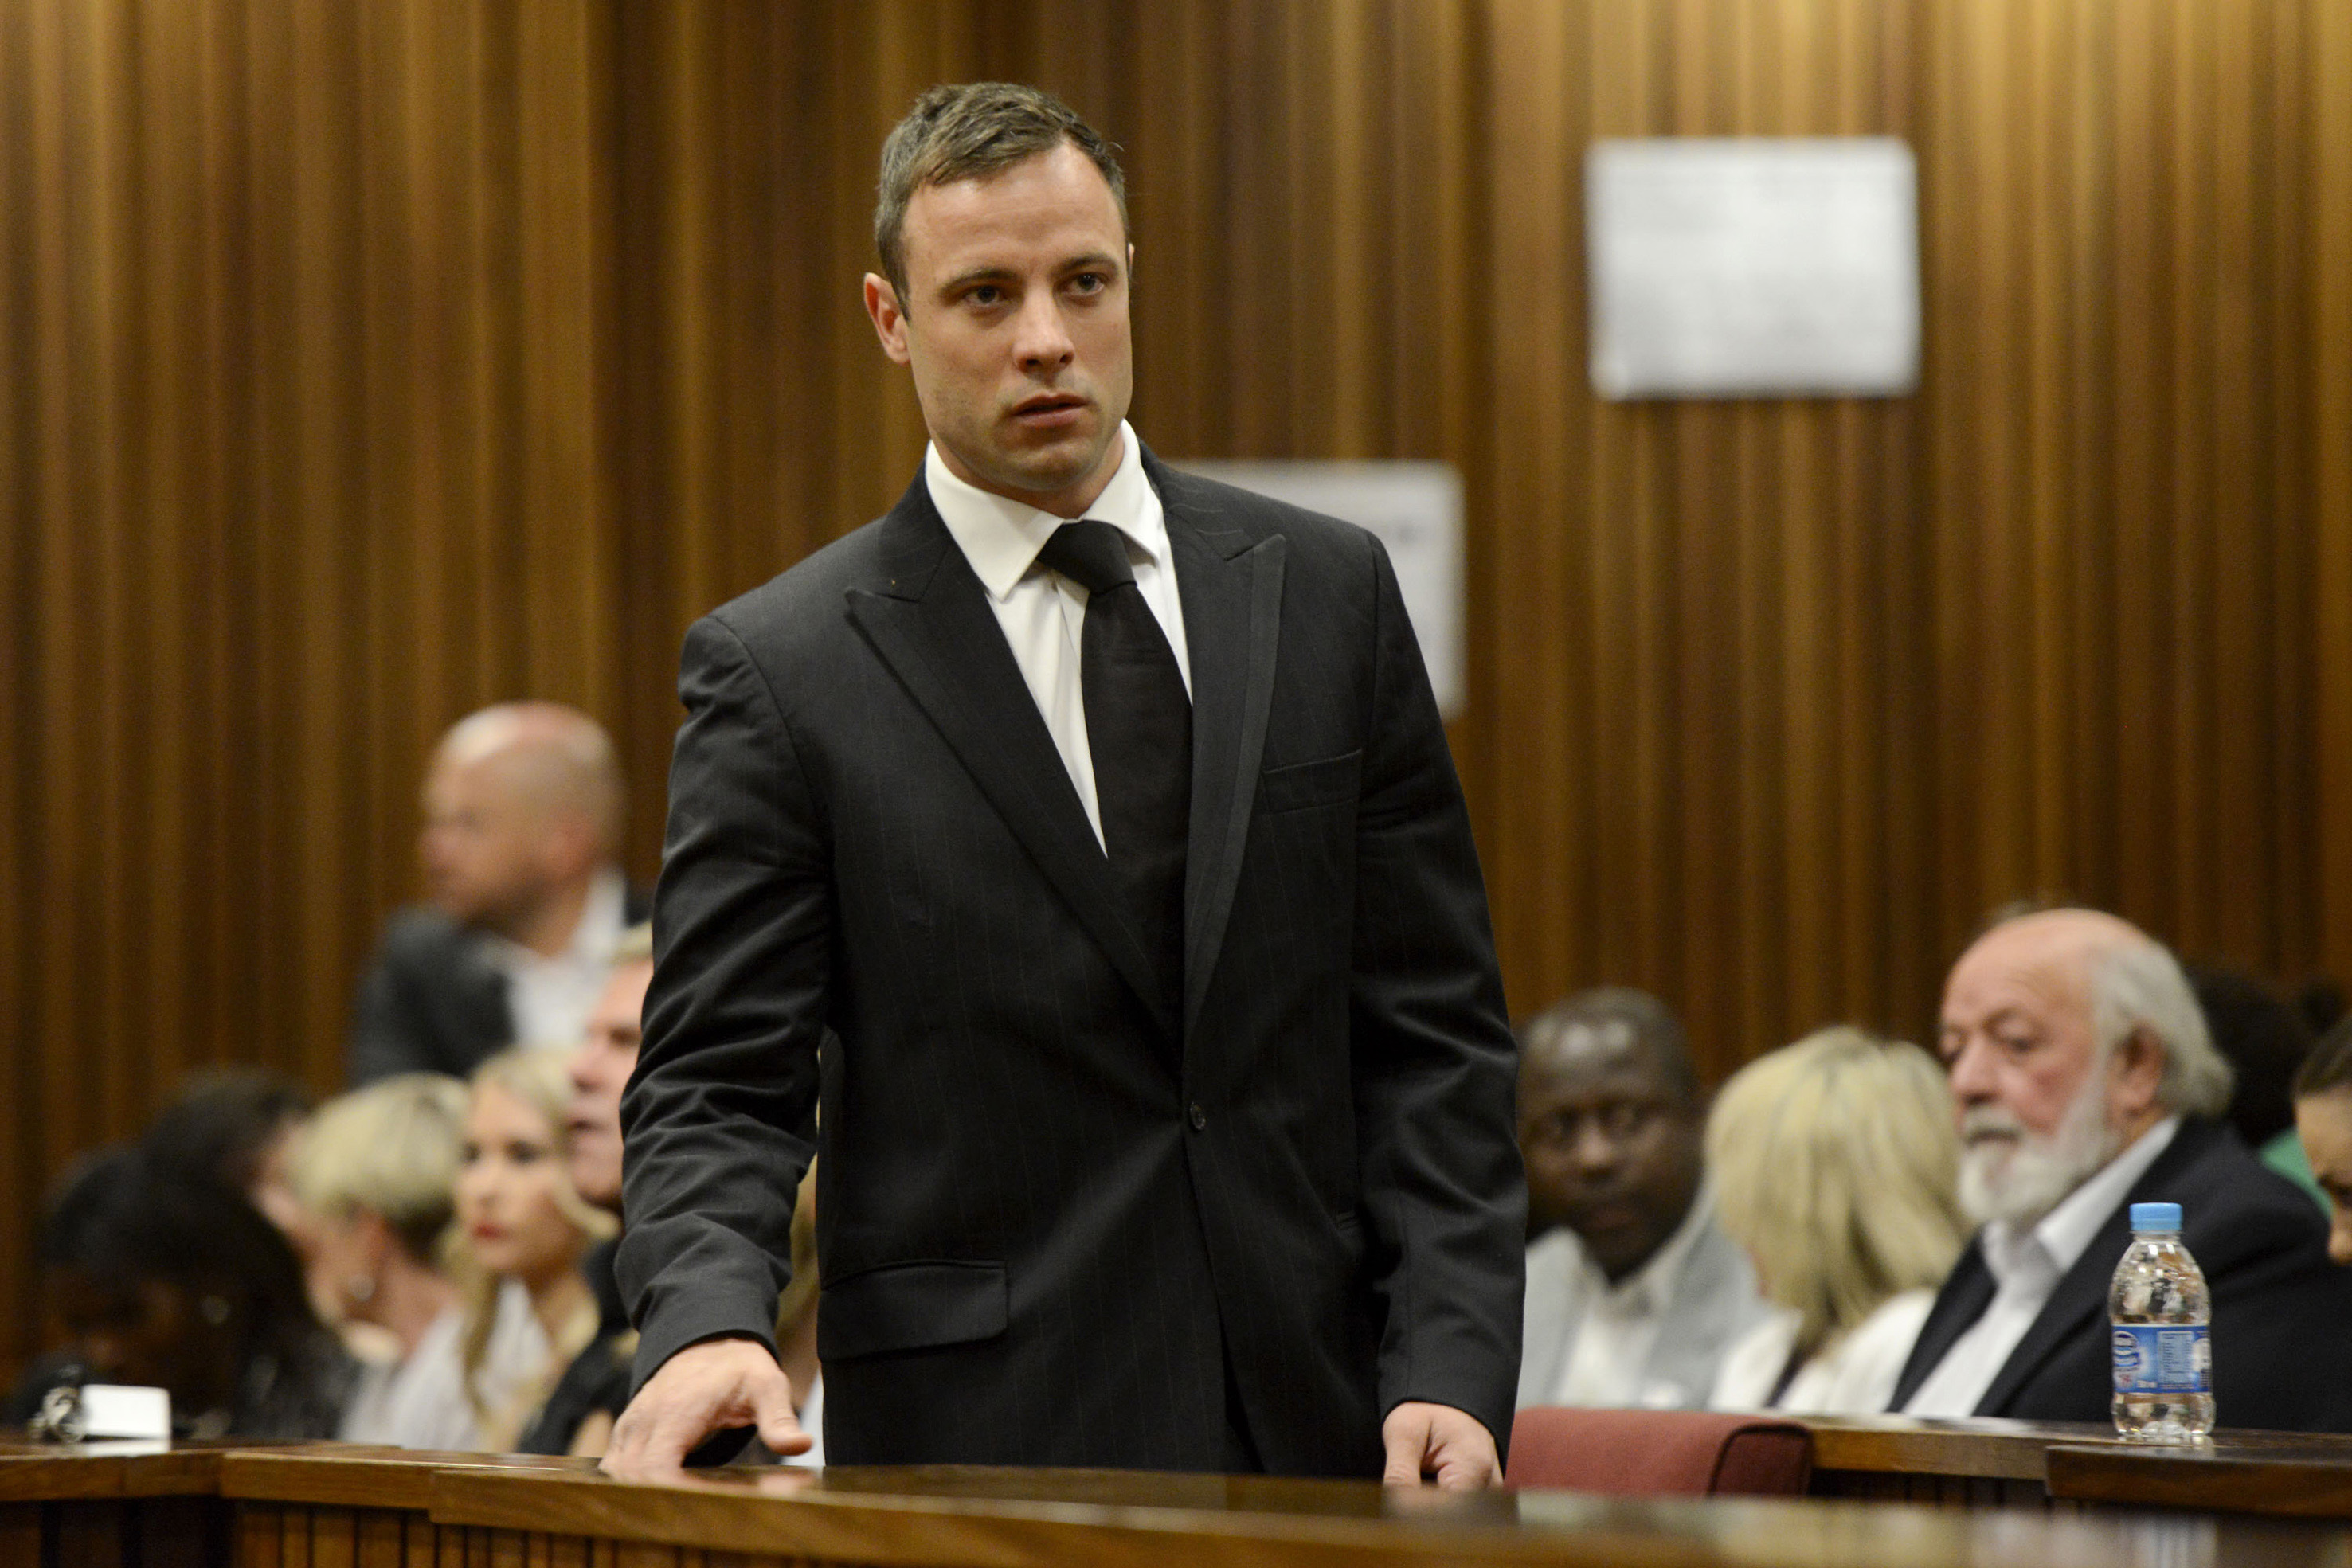 South African Olympic and Paralympic track star Oscar Pistorius attends his sentencing at the North Gauteng High Court in Pretoria Oct. 21, 2014